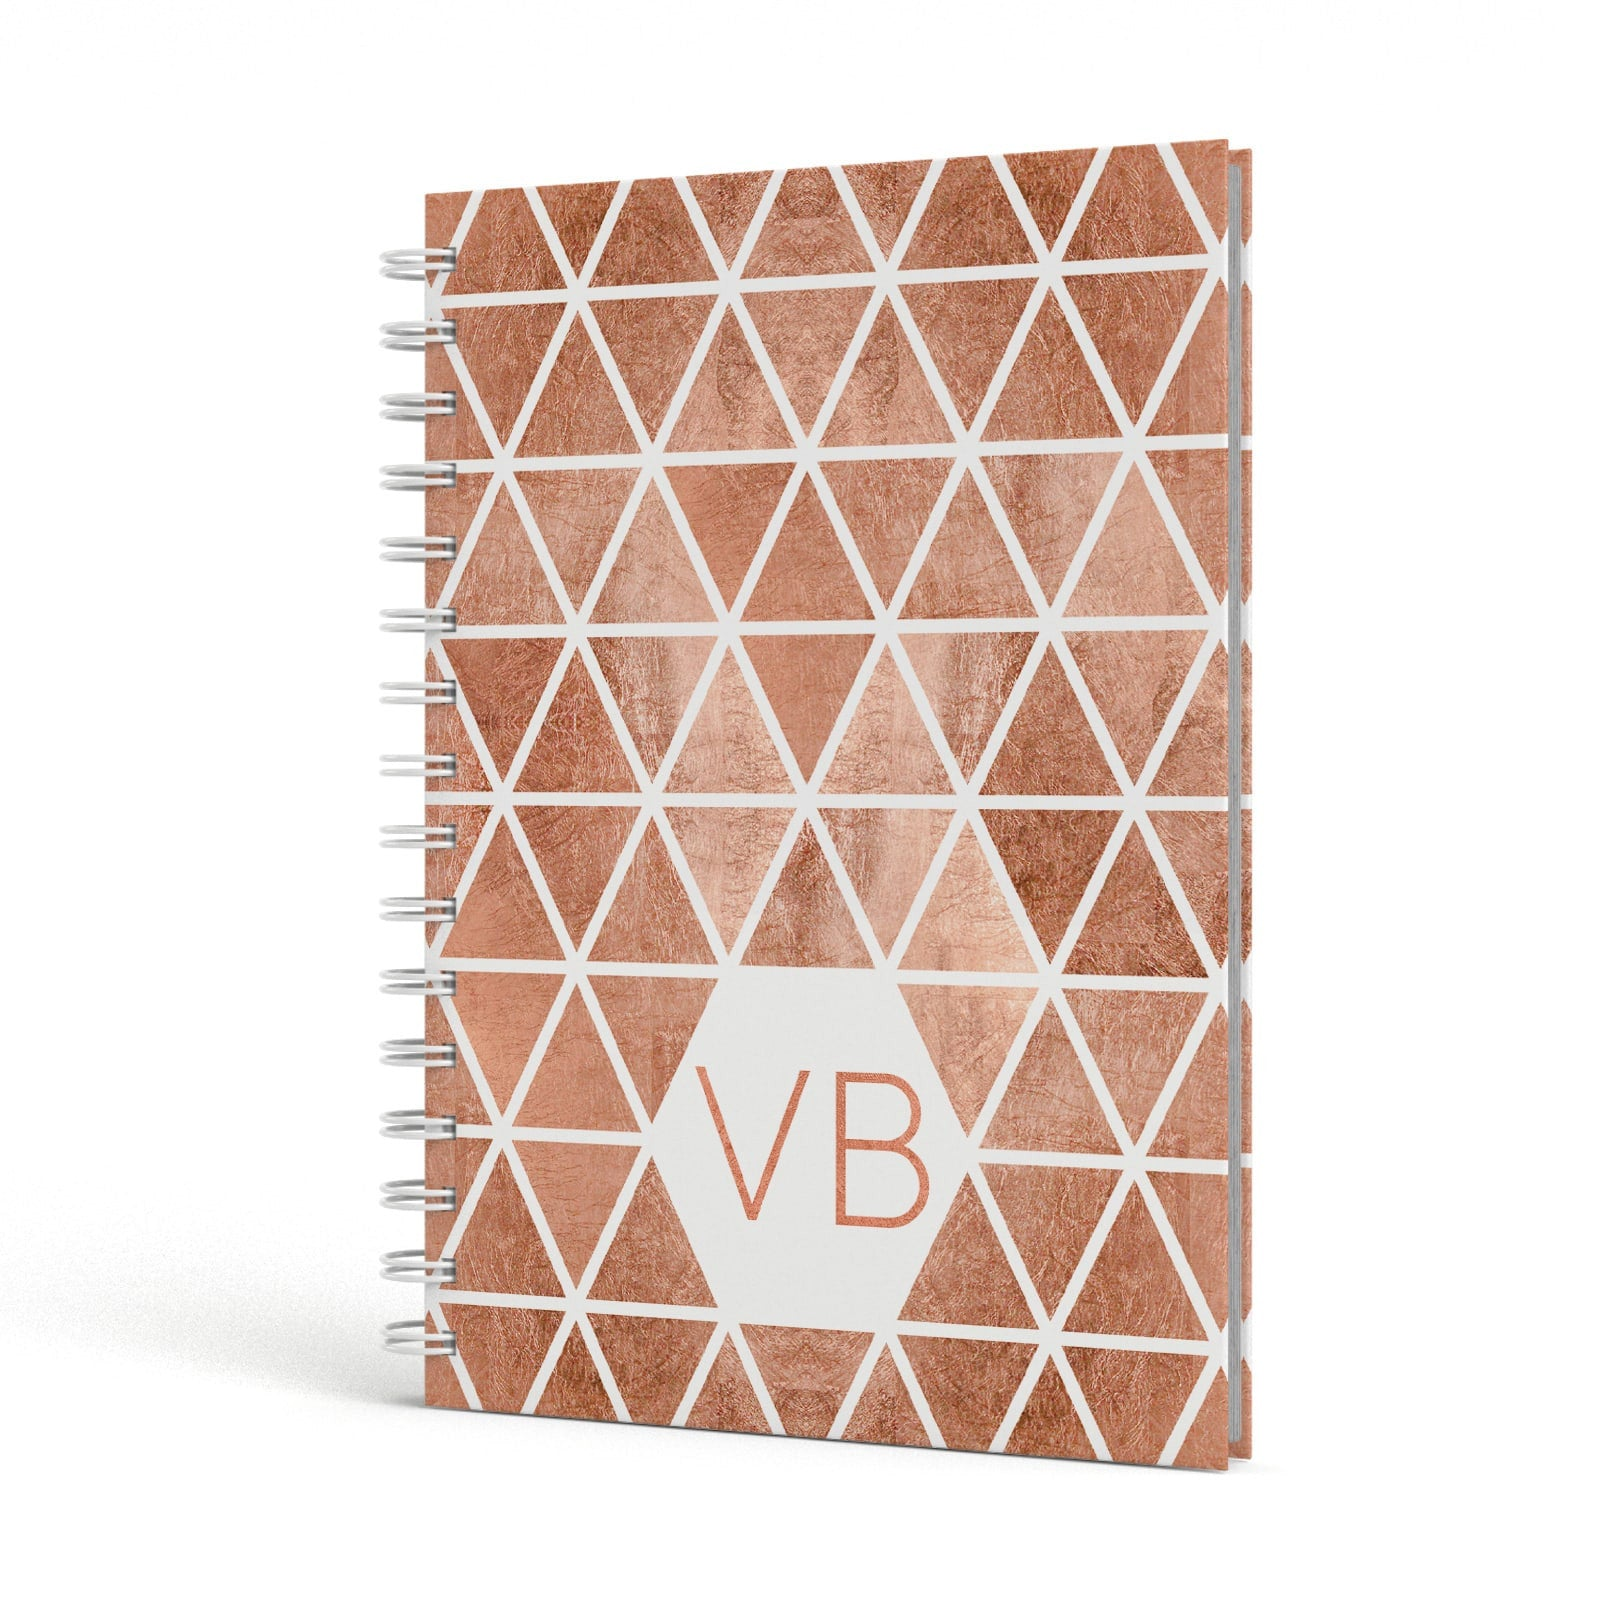 Personalised Copper Initials A5 Hardcover Notebook Side View